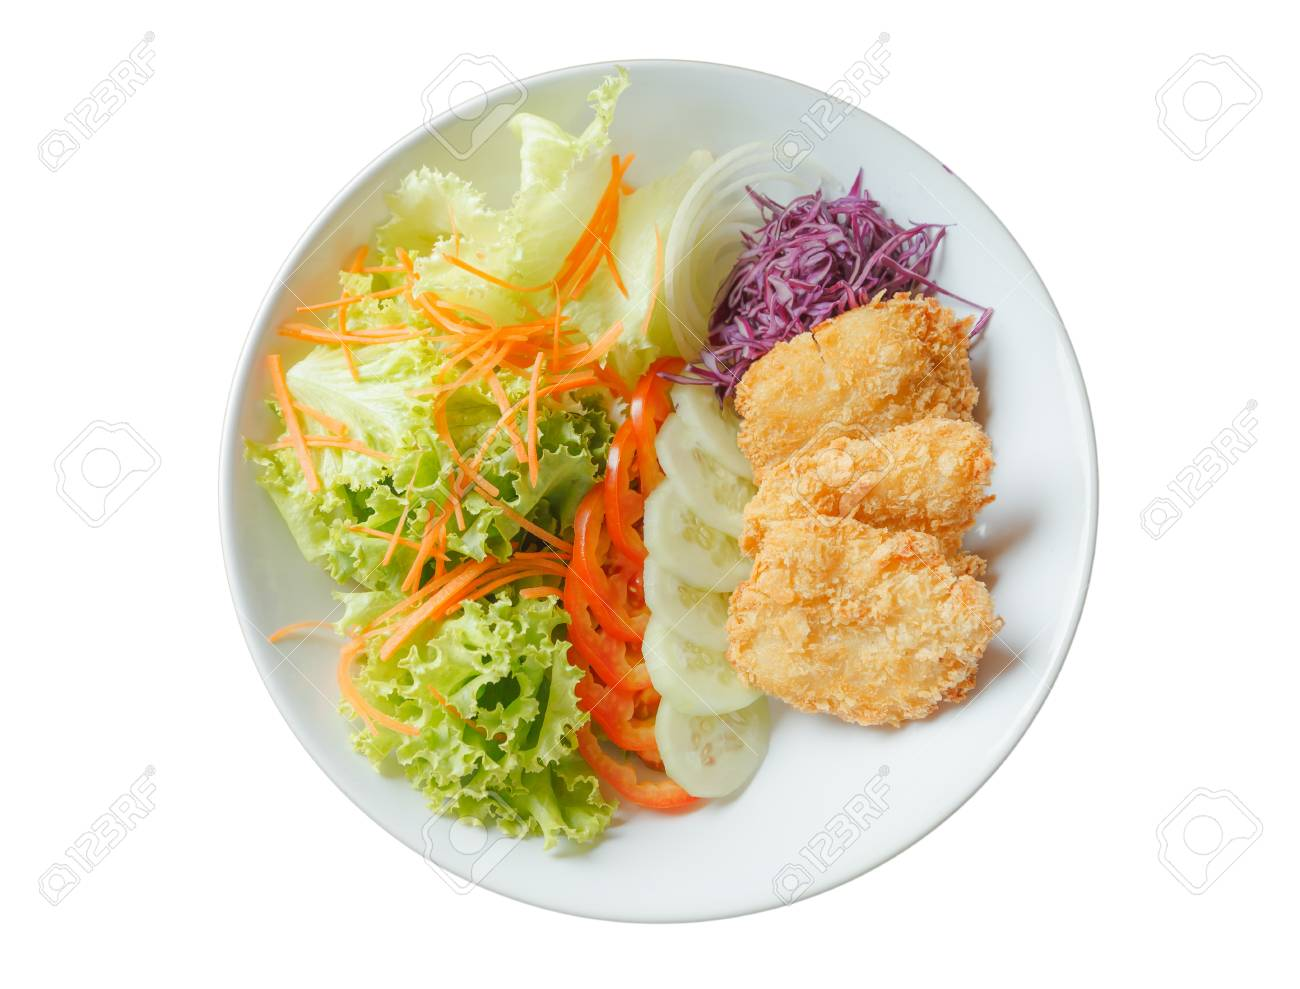 Breaded Fried Fish Salad isolated on white background Stock Photo - 16536605